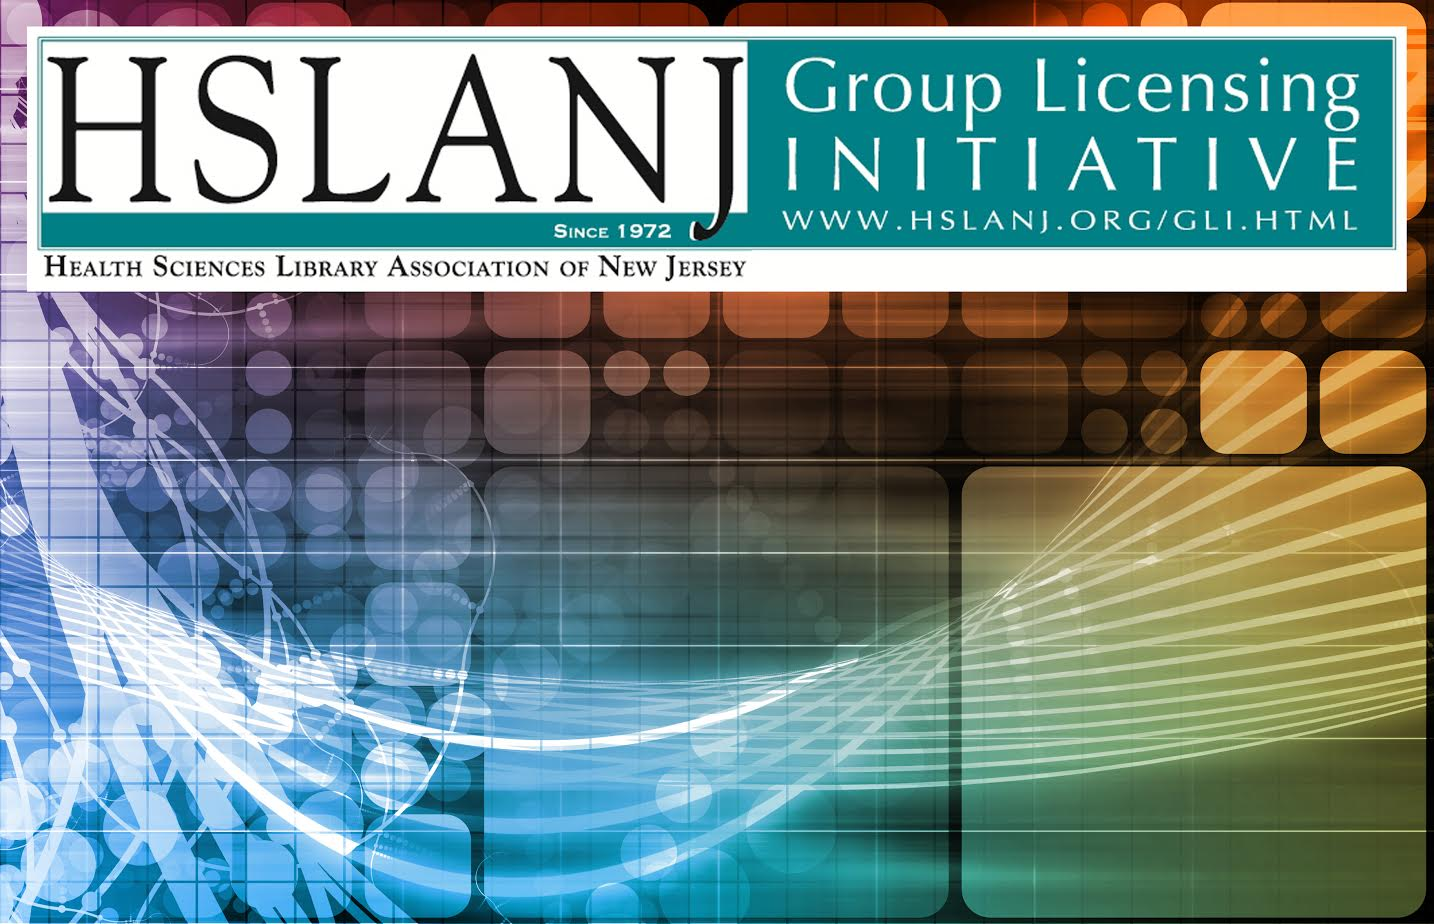 Coming Soon: The HSLANJ Group Licensing Initiative's Fall Offer!